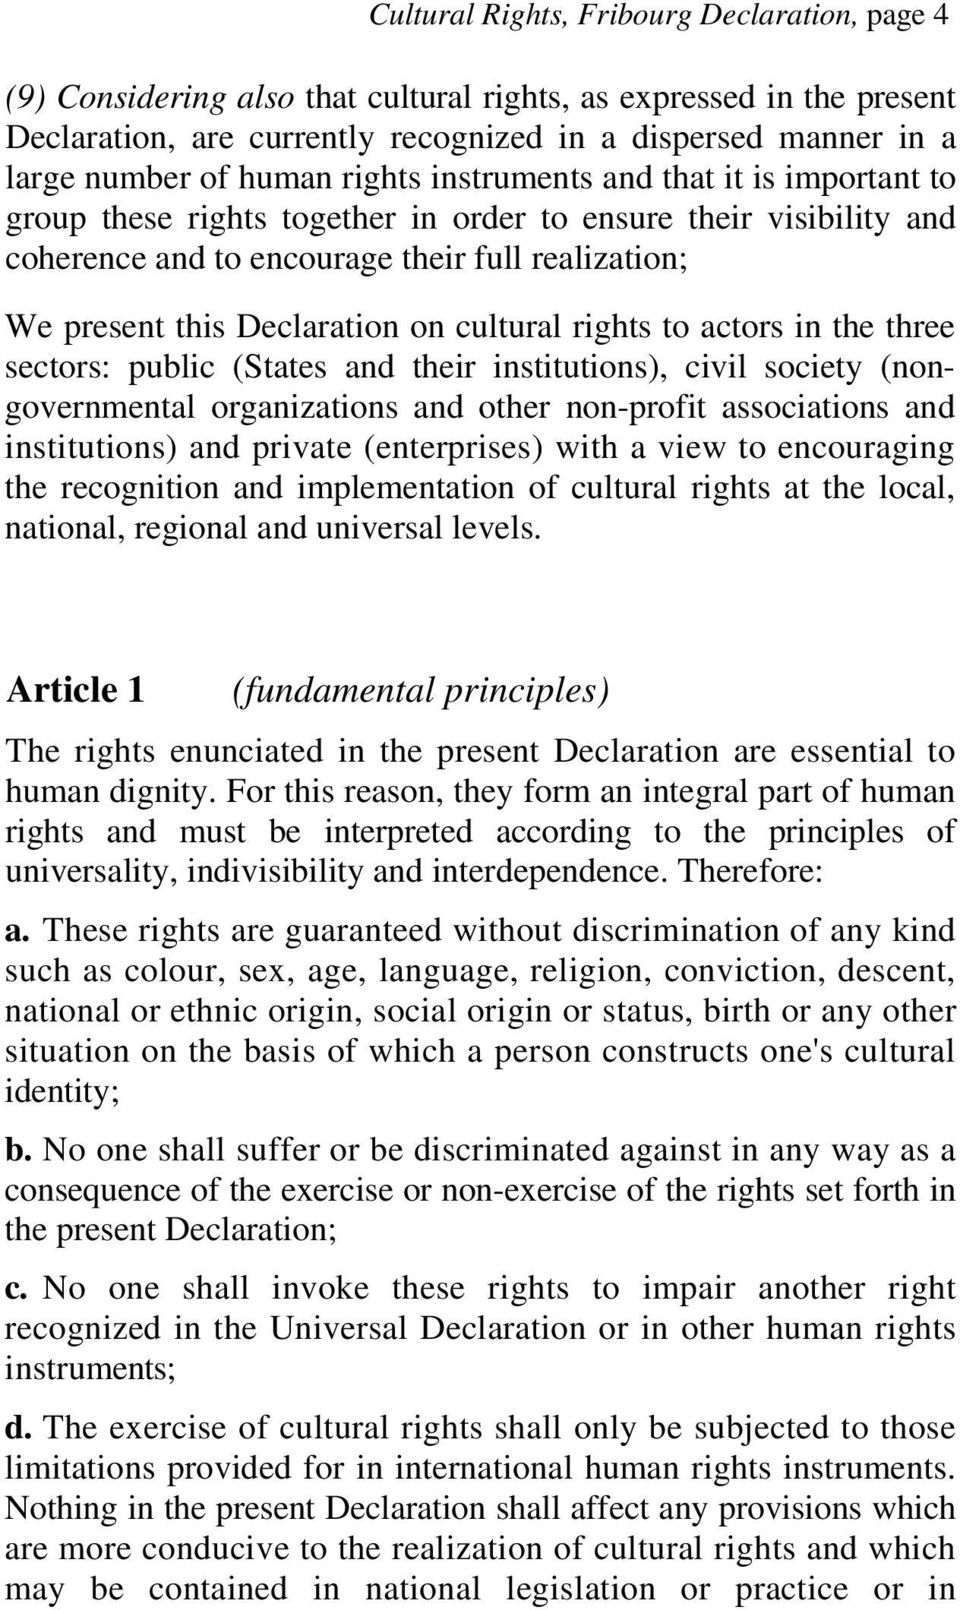 on cultural rights to actors in the three sectors: public (States and their institutions), civil society (nongovernmental organizations and other non-profit associations and institutions) and private